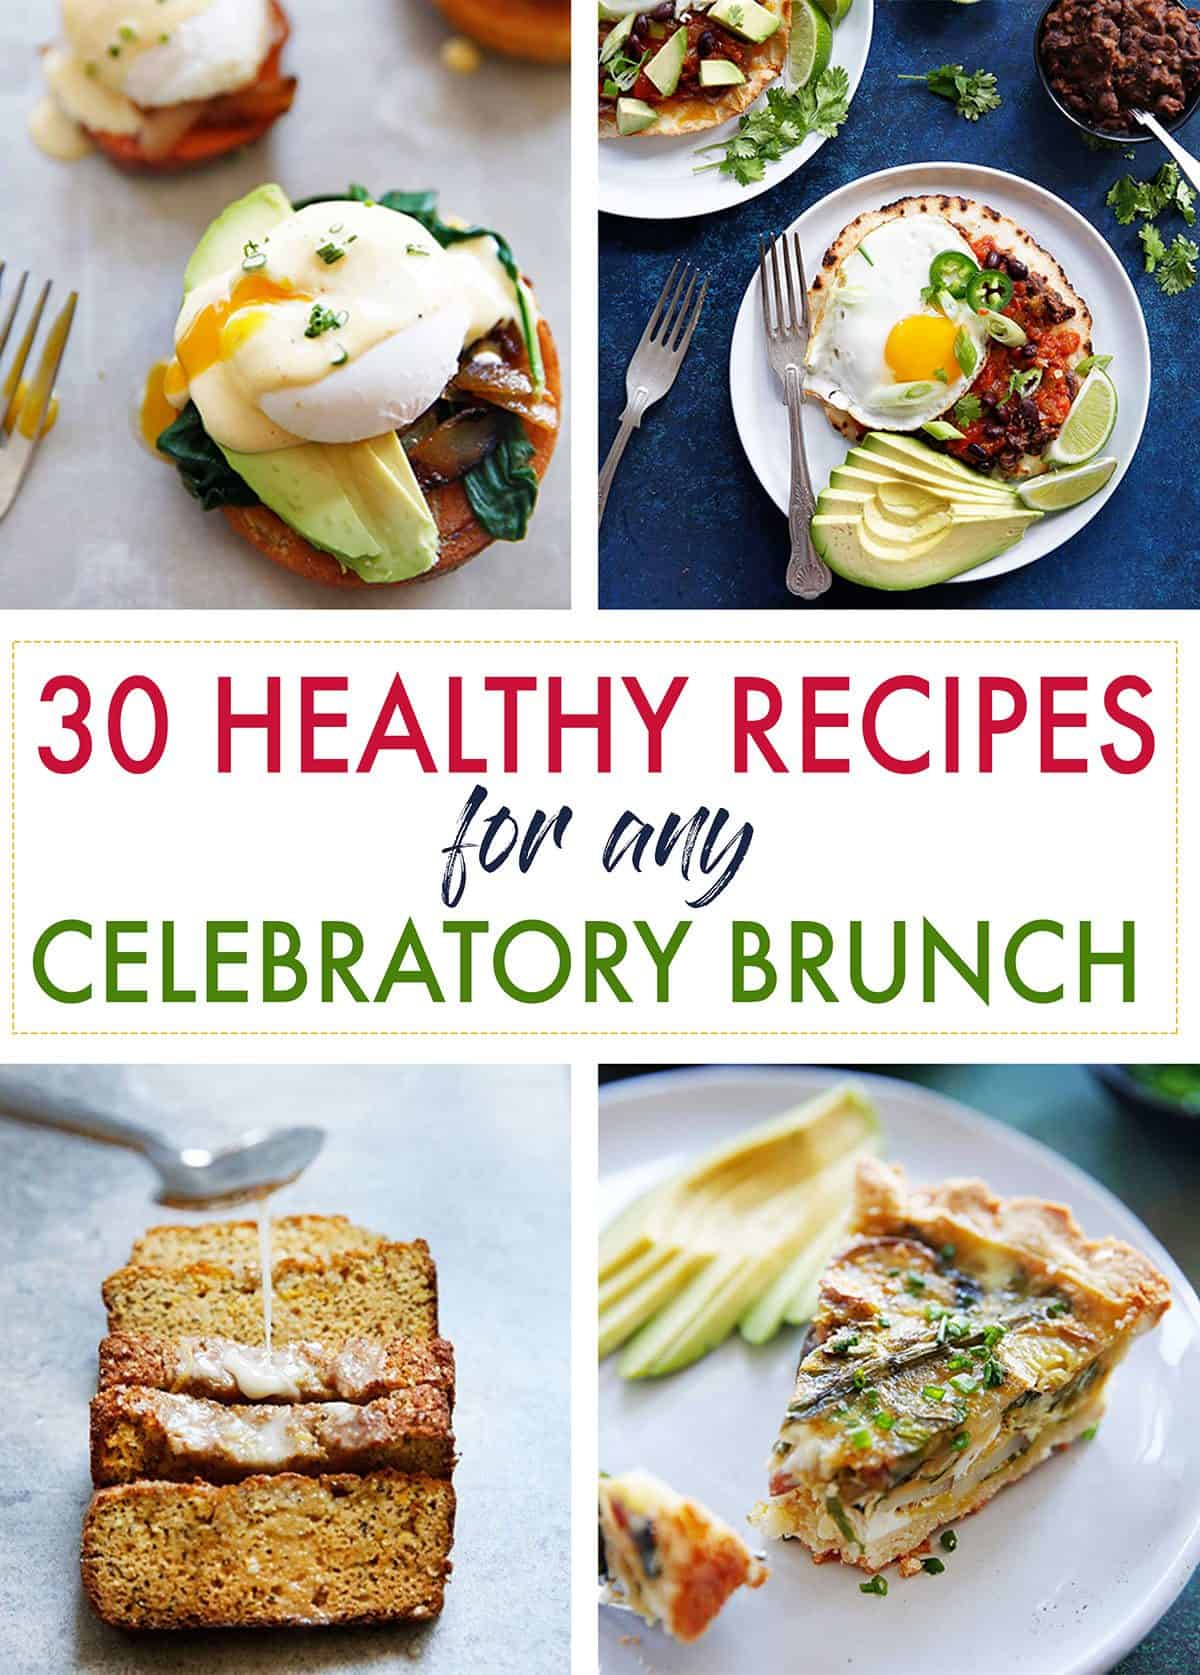 Healthy Brunch Recipes to Start the Year Off Right